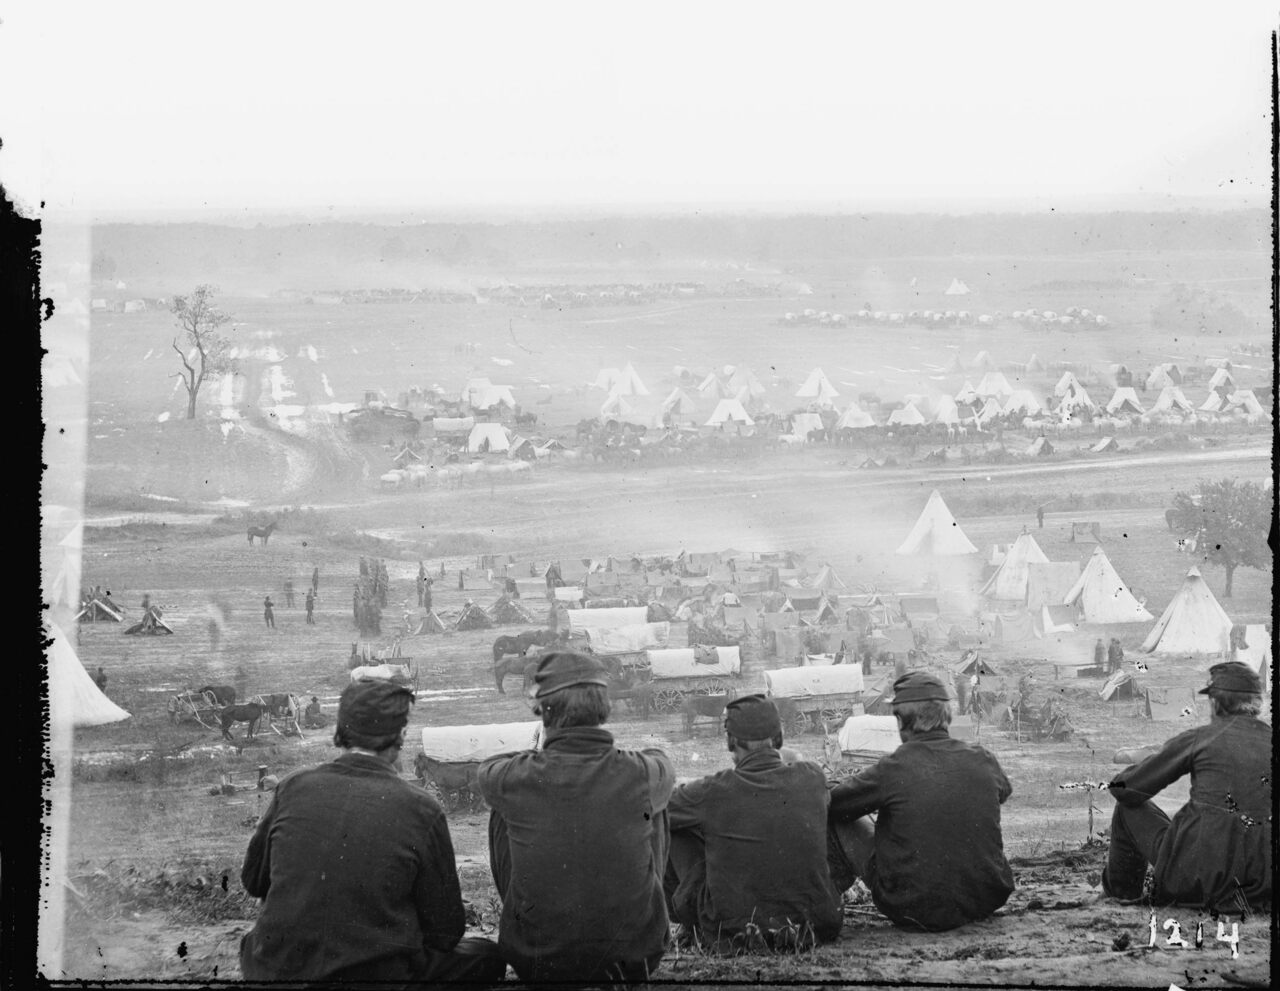 Photograph from the main eastern theater of the Civil War, the Peninsular Campaign, Cumberland Landing, Virginia, c. 1862.